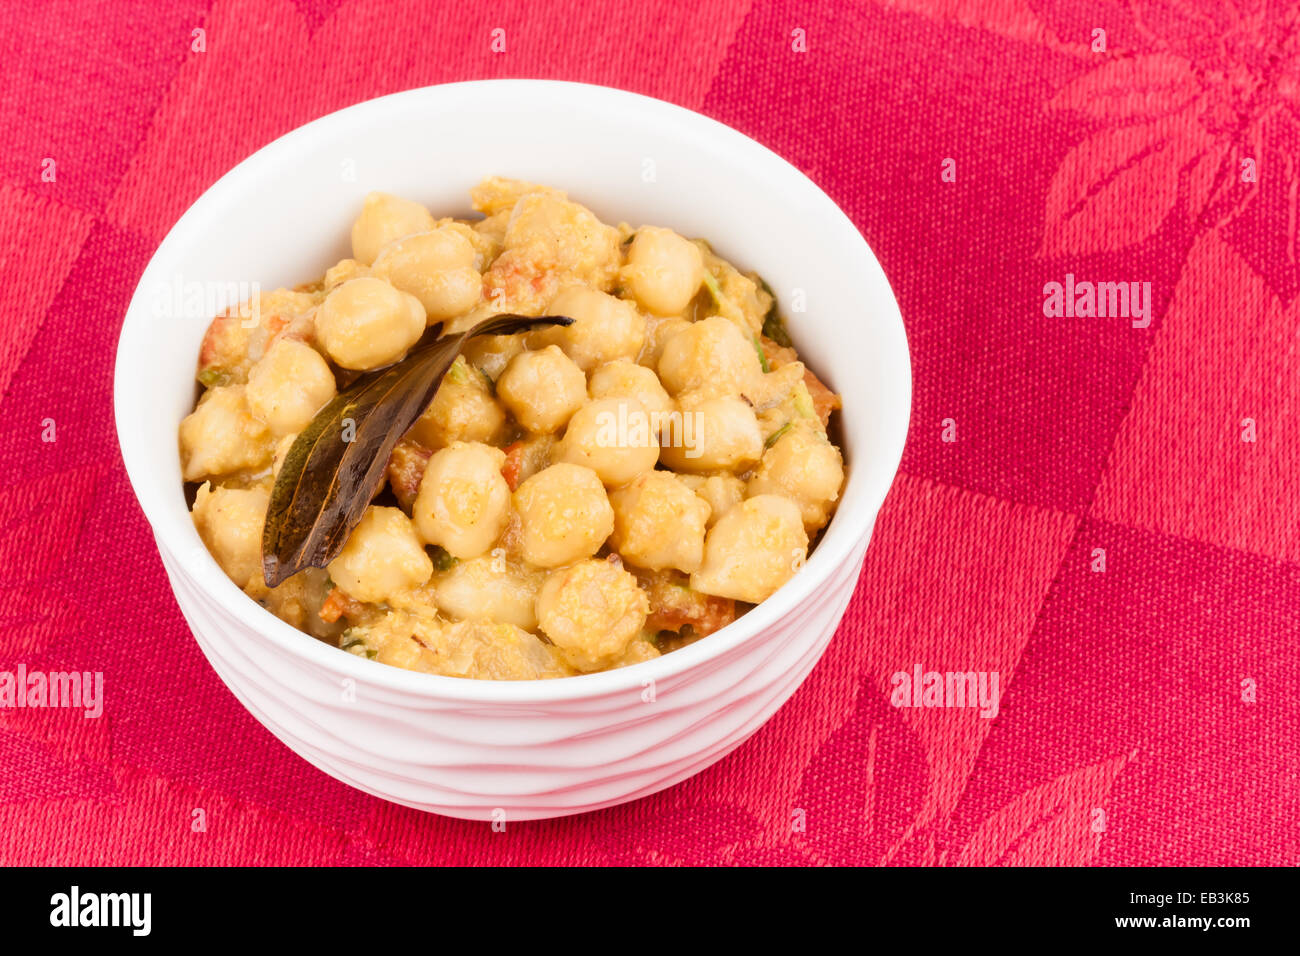 Closeup of delicious Indian chana masala. It is prepared using chana dal (chickpea) and various spices. - Stock Image